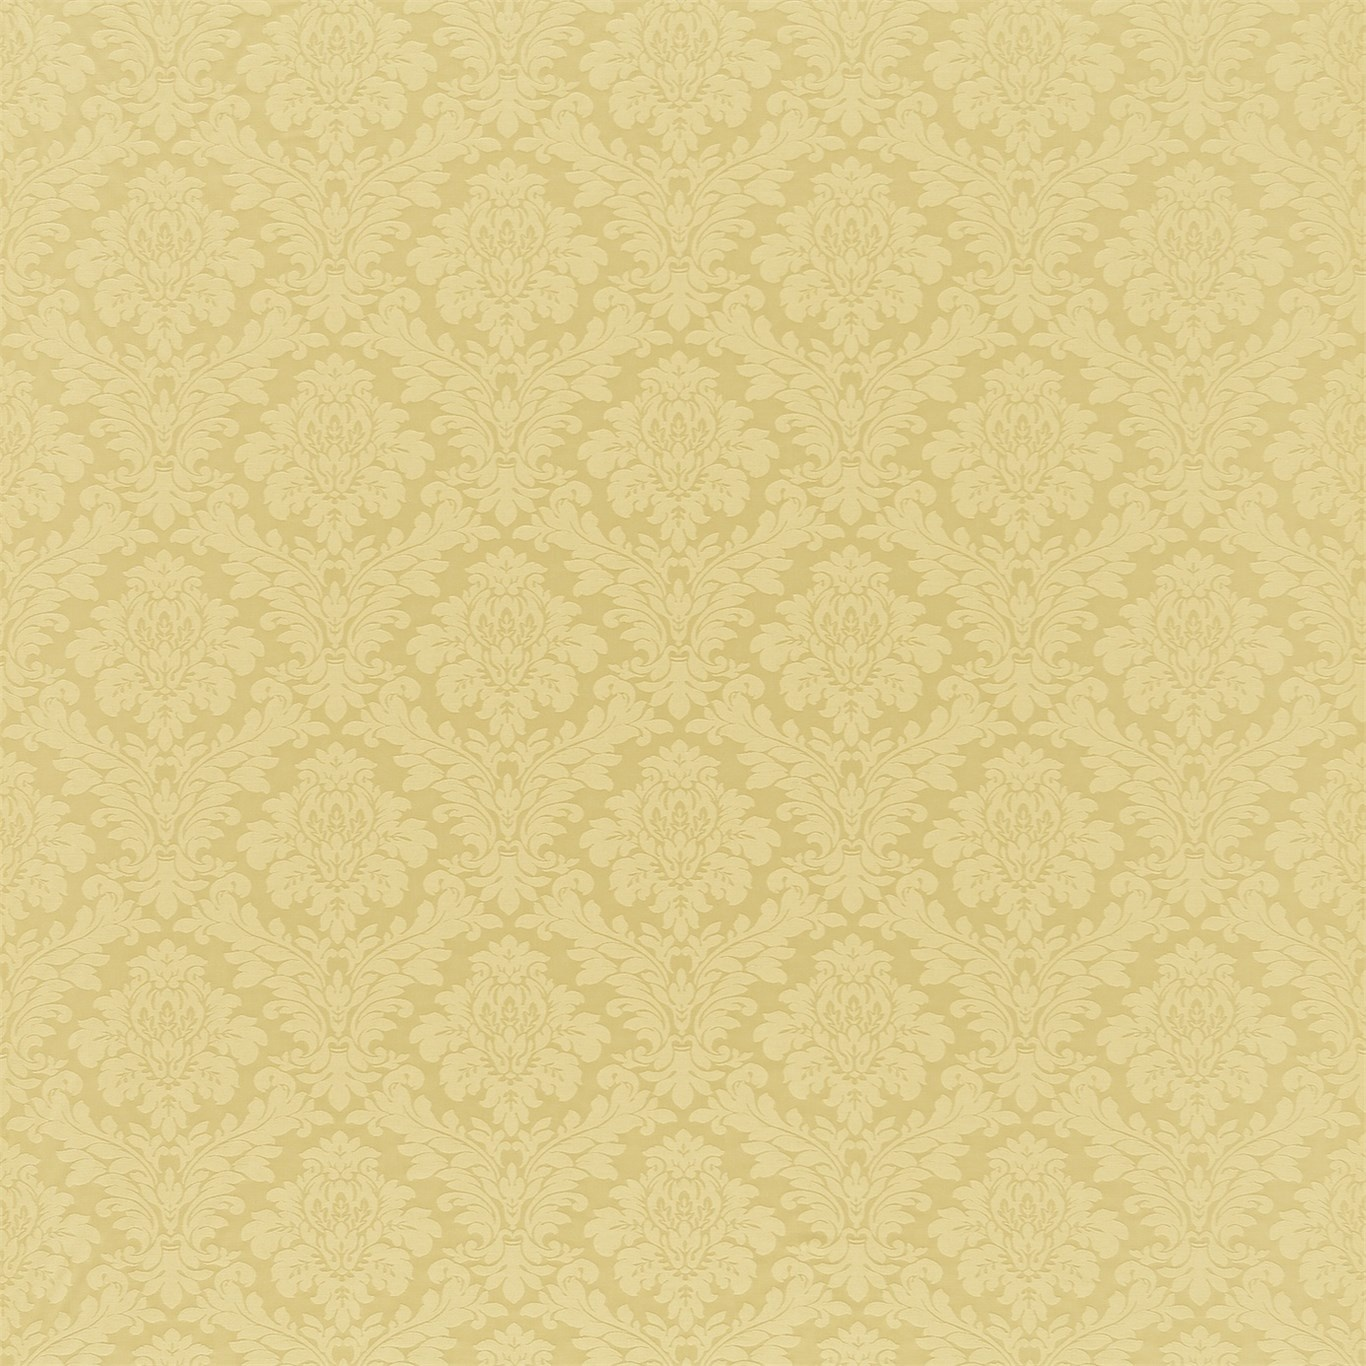 Image of Sanderson Lymington Damask Gold Fabric 232598